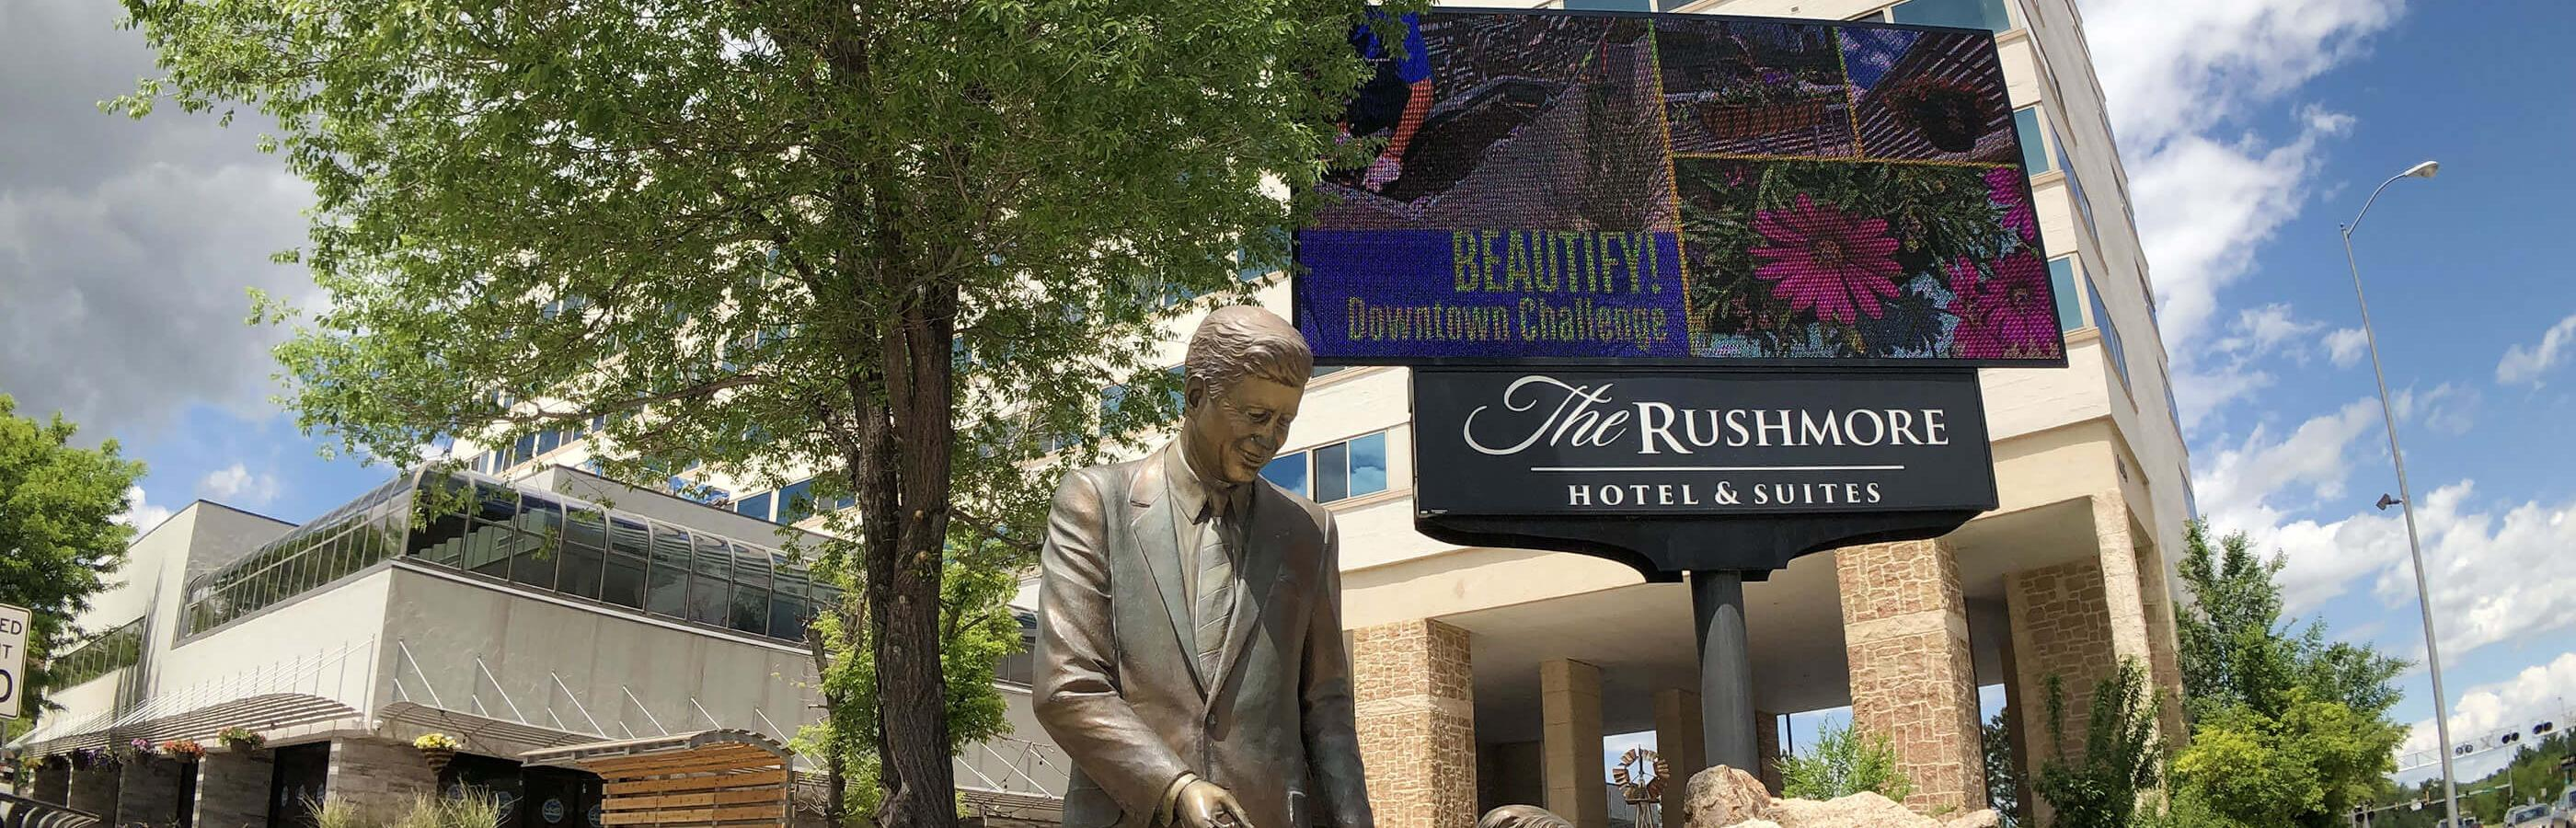 John F Kennedy Statue in front of the Rushmore Hotel and Suites